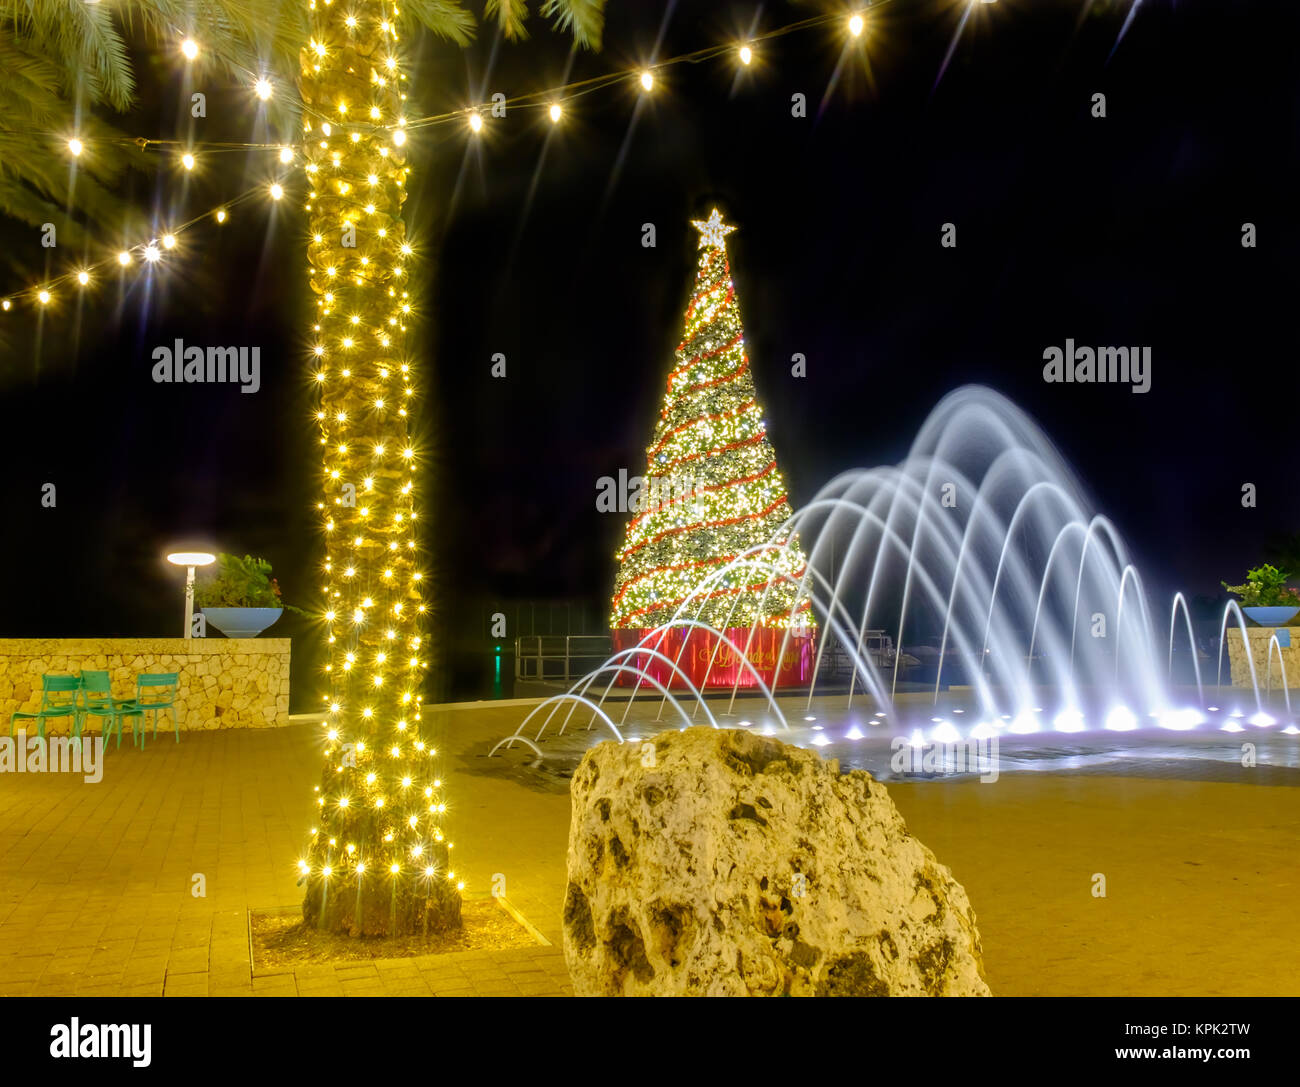 A Christmas tree, a water fountain and a illuminated palm tree with strip lights on a pedestrian street of Camana - Stock Image